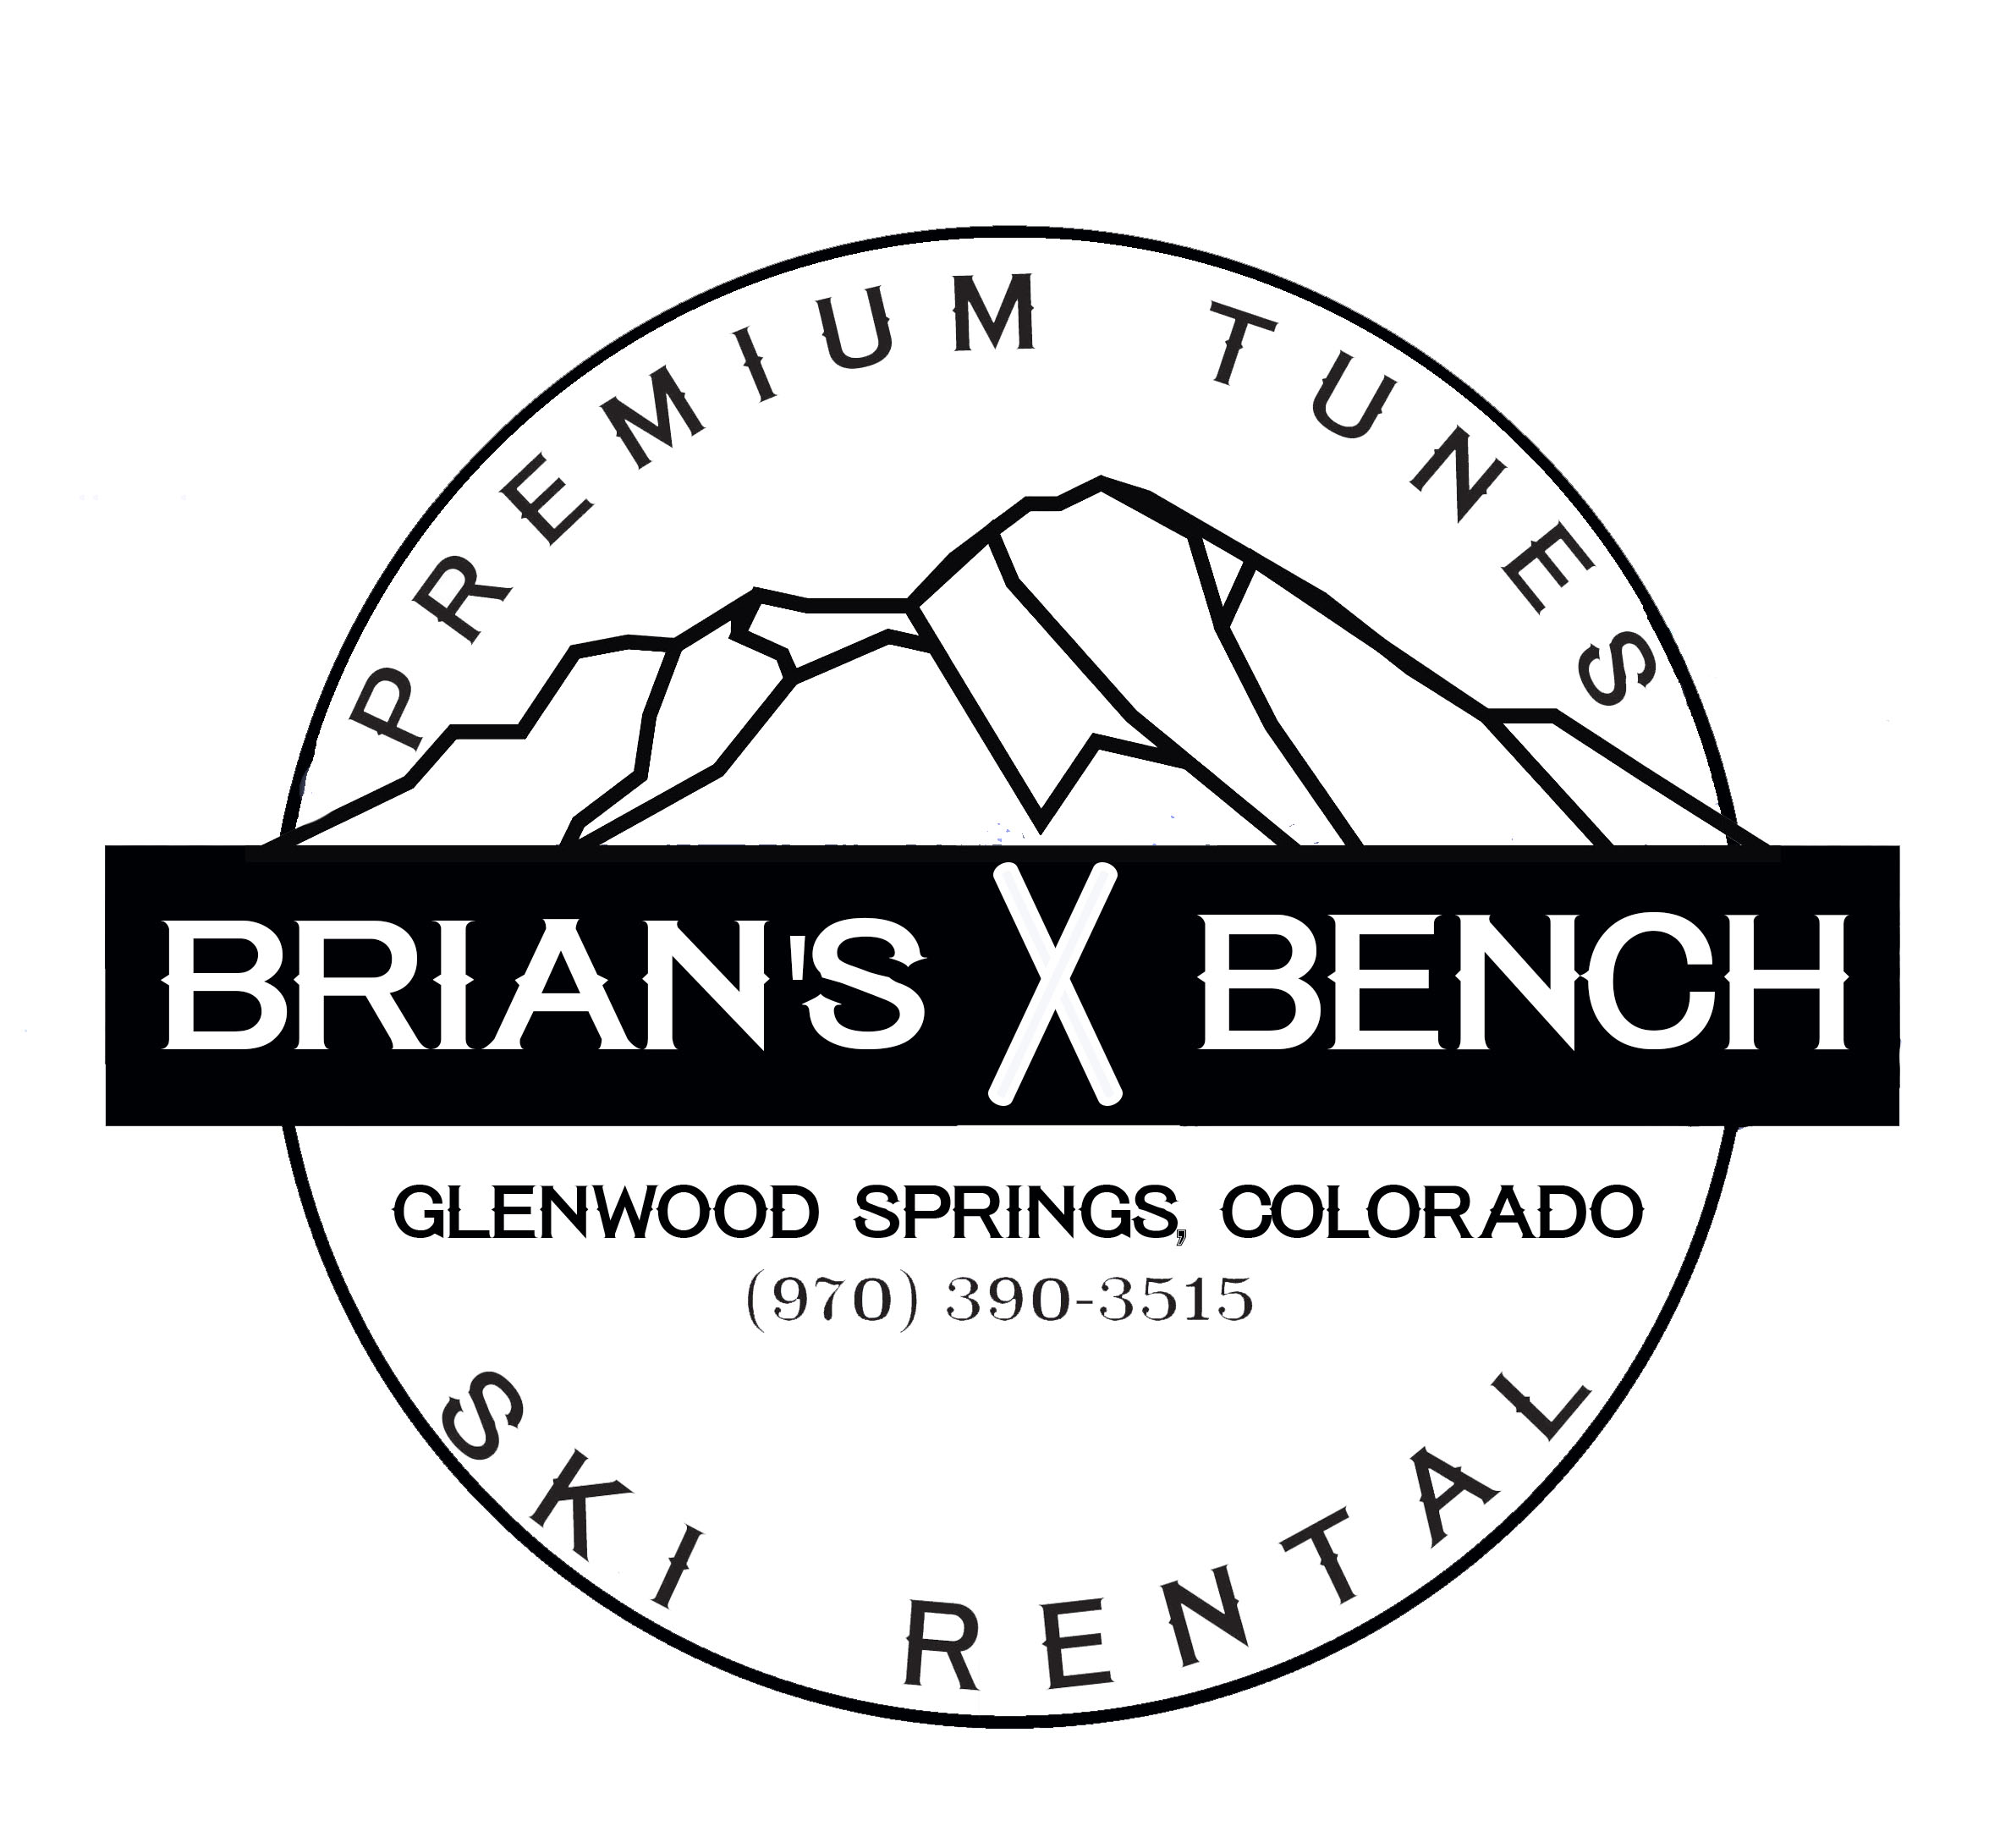 BRIAN'S BENCH